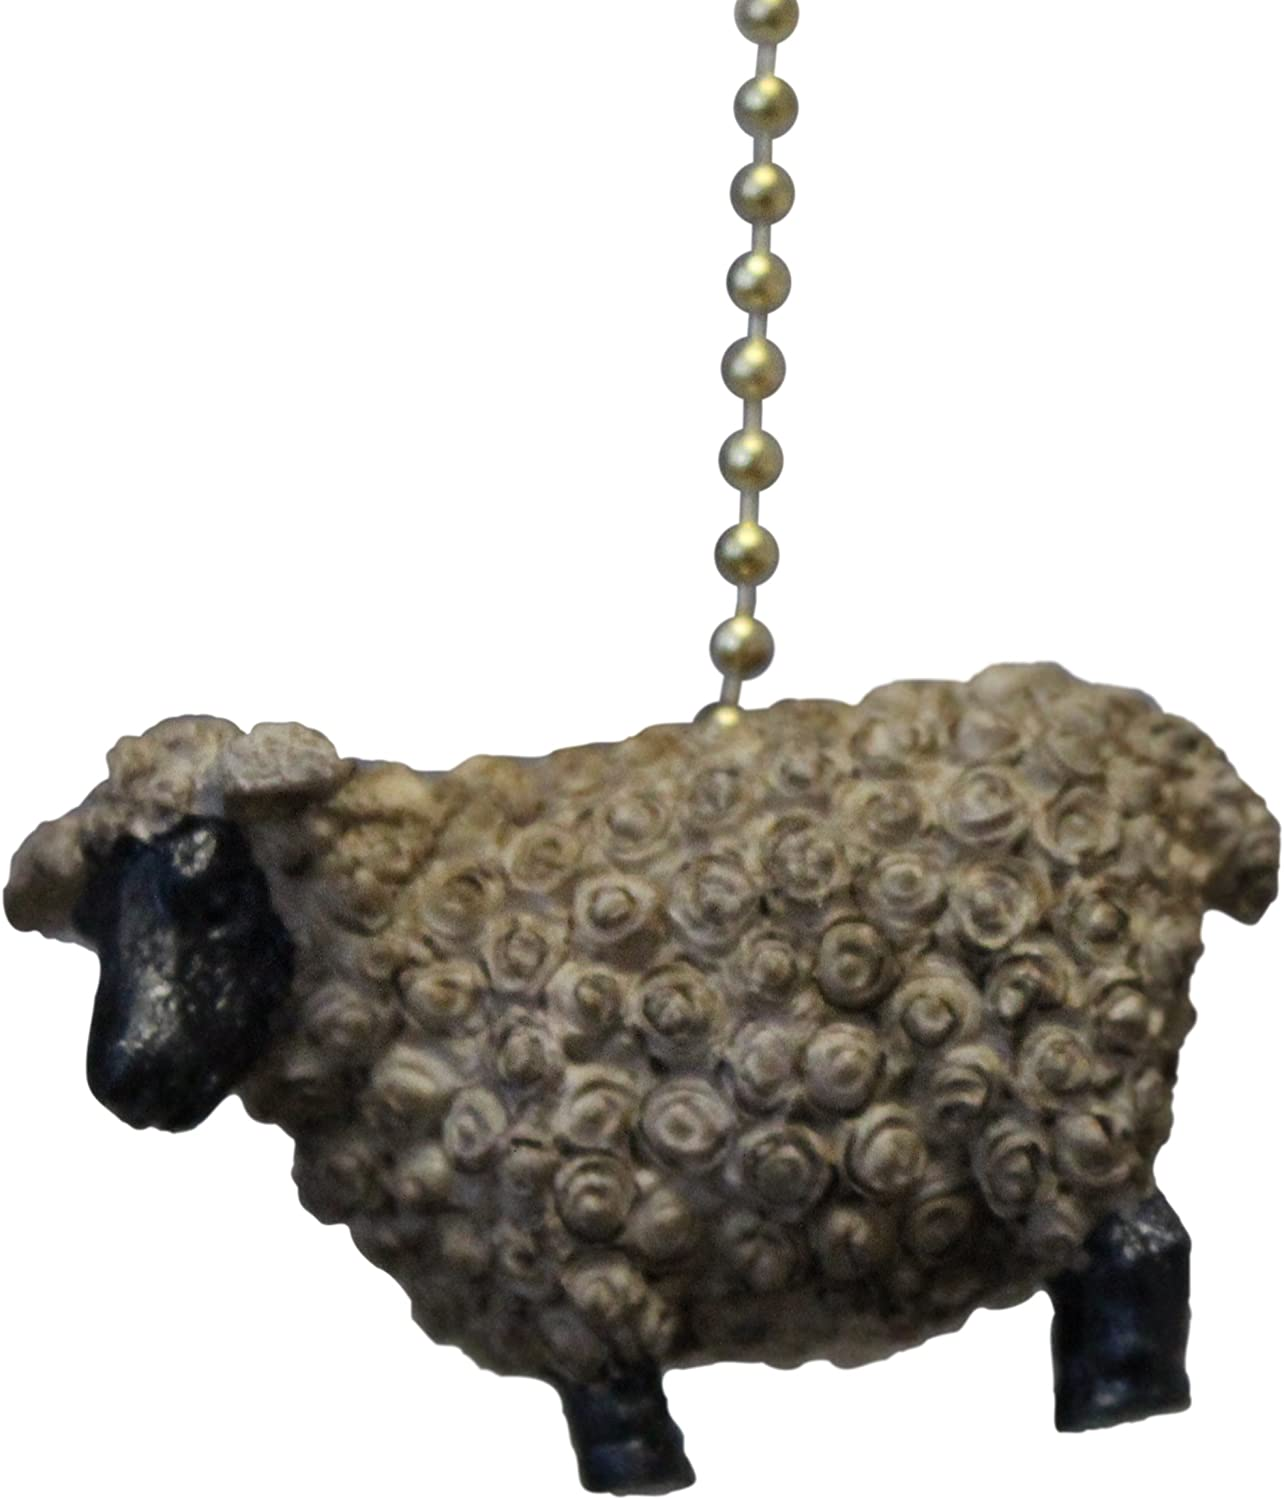 Suffolk Sheep Lamb Ceiling Fan Pull or Light Pull Chain